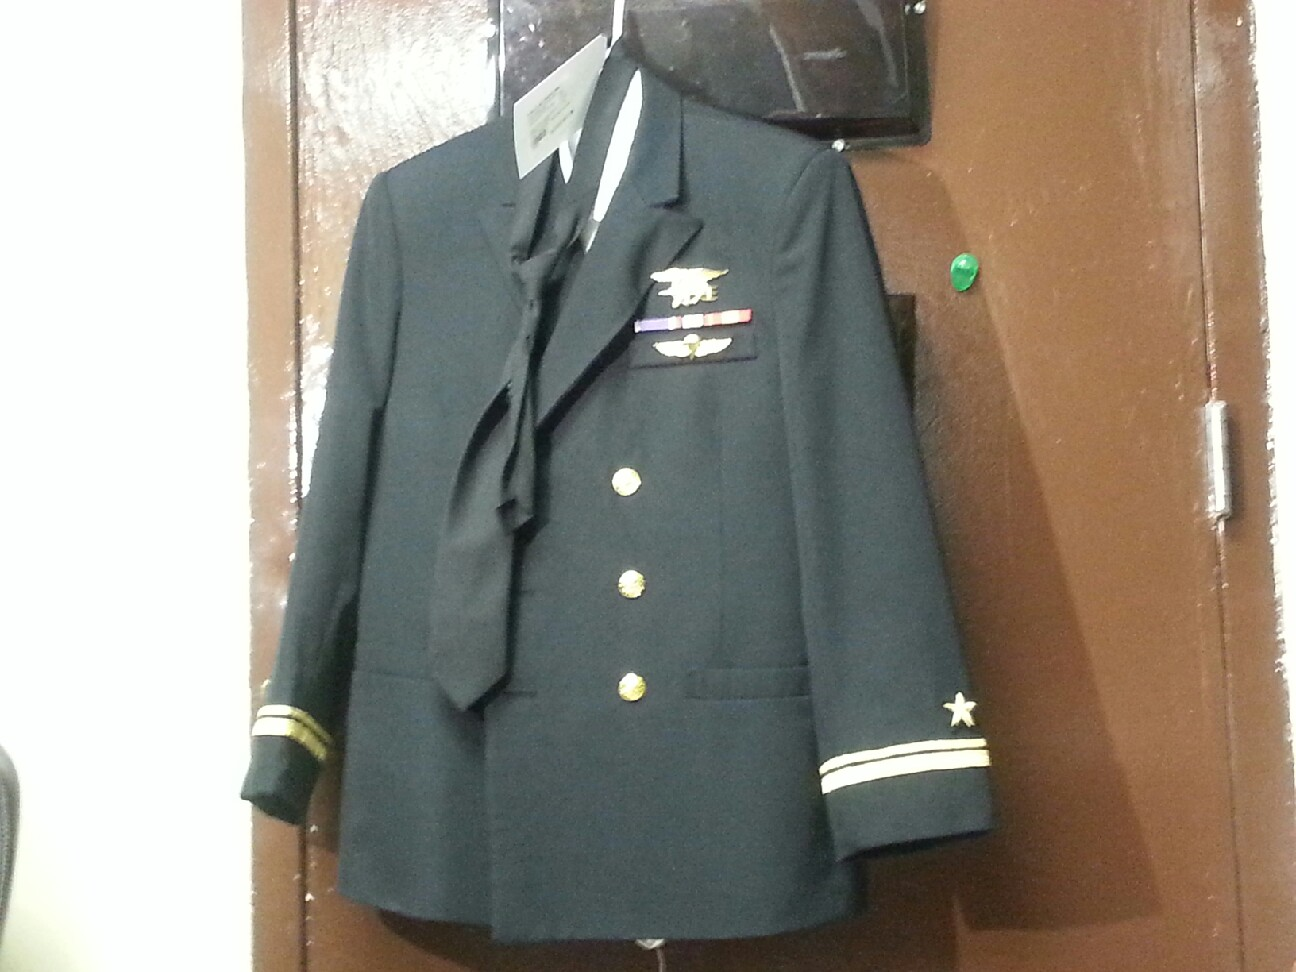 635512349258047318-Confiscated-uniform